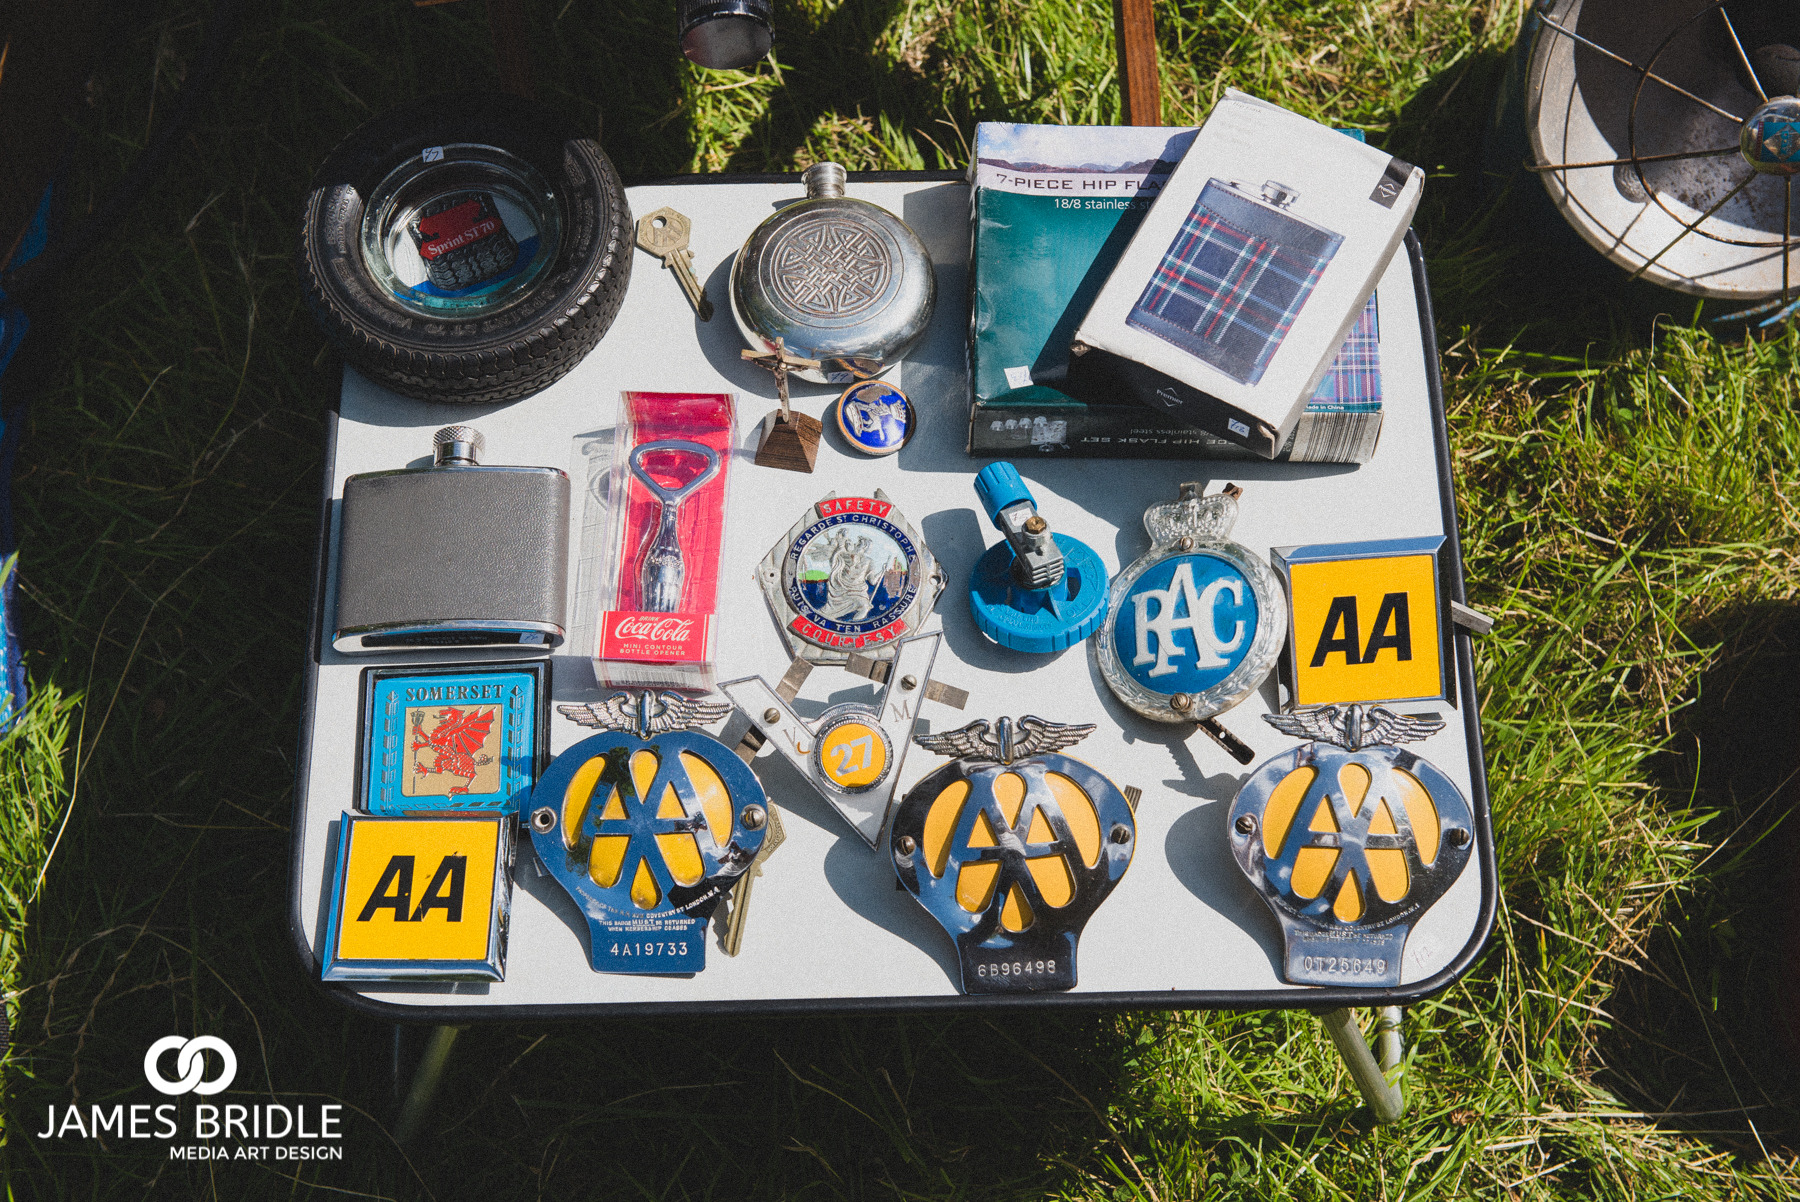 AA Badges of old